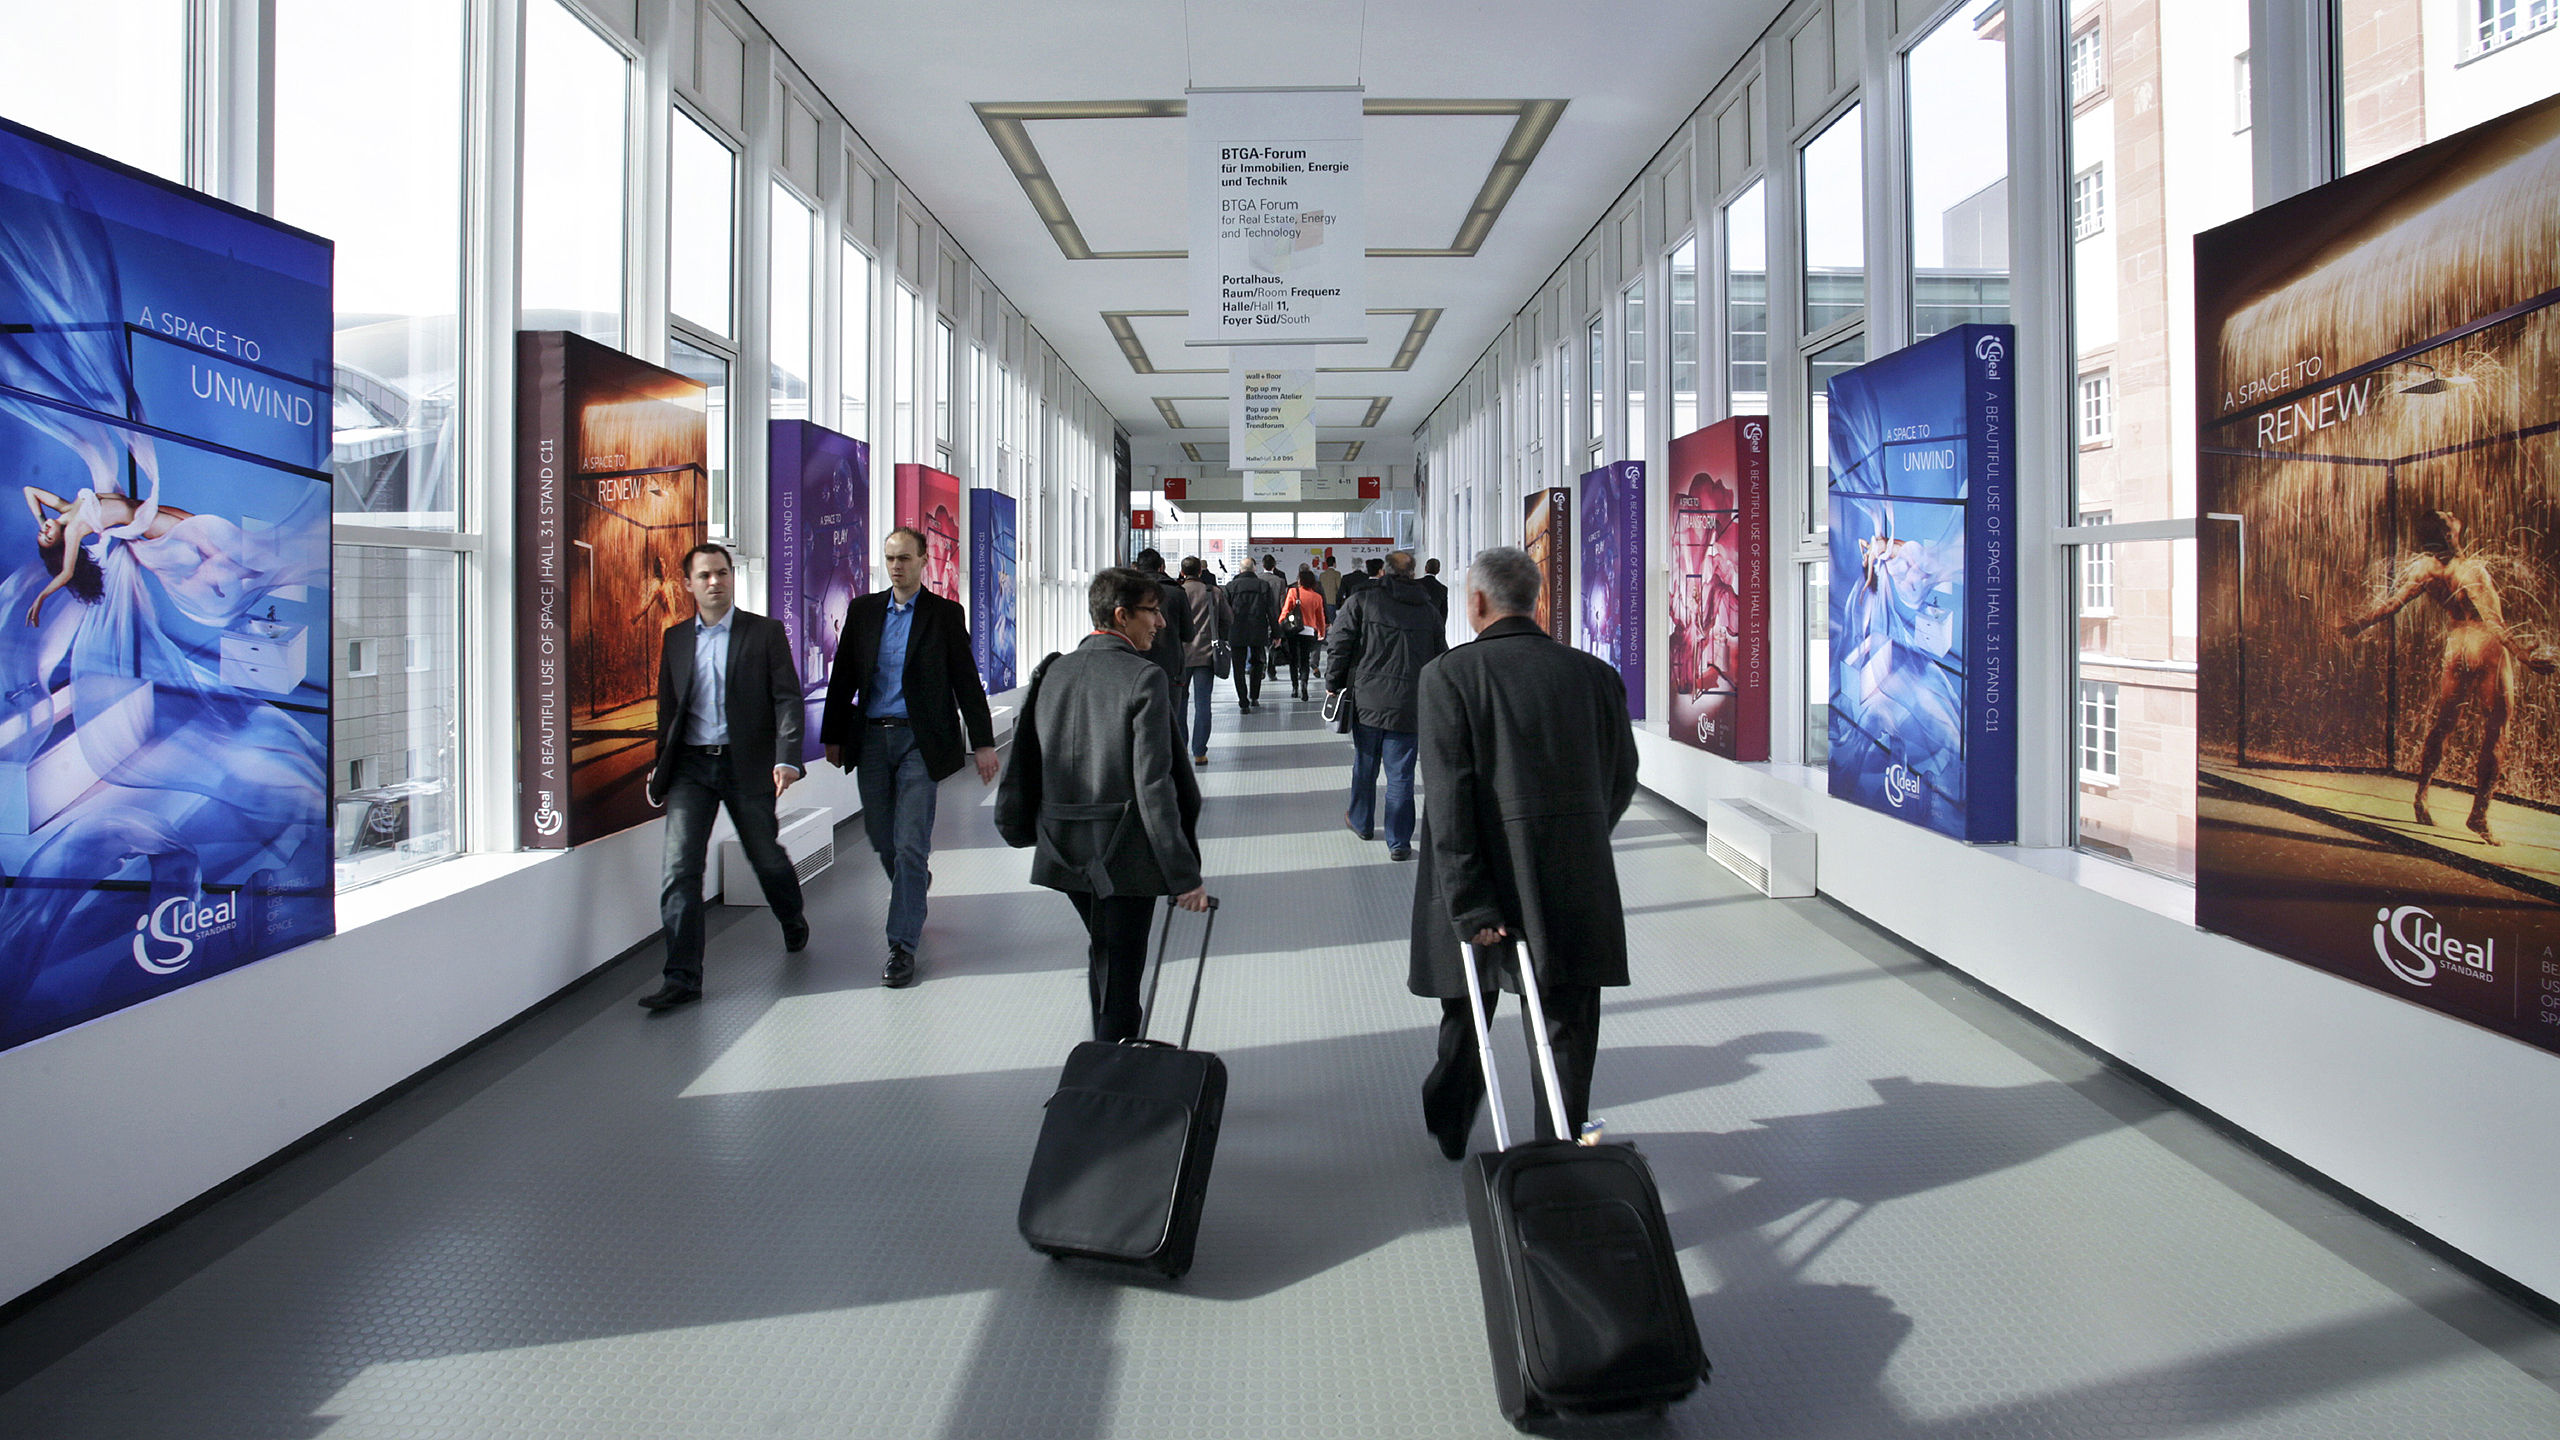 Trade fair visitors walk past advertising displays at Via Mobile